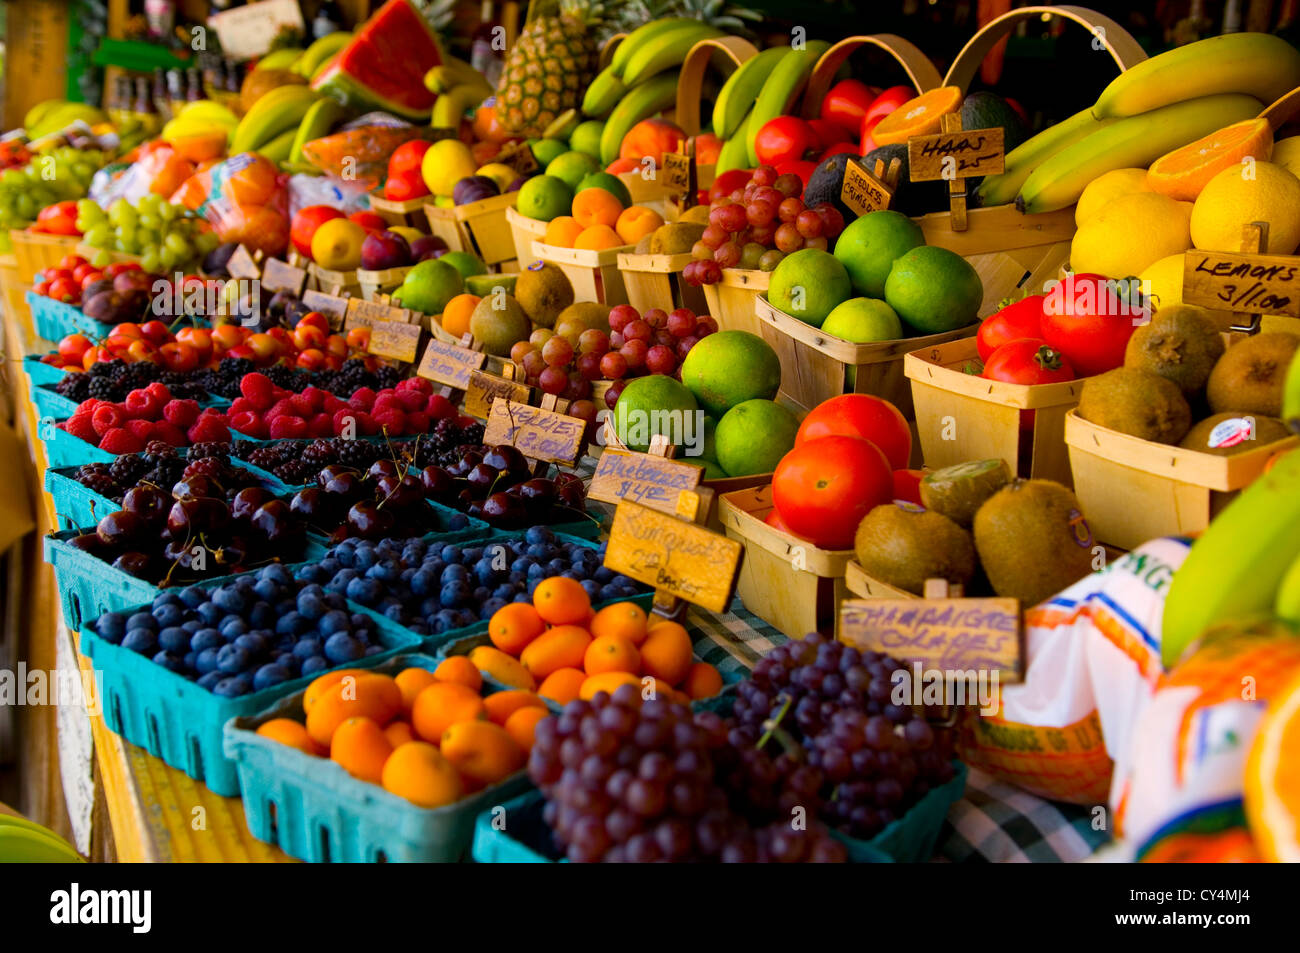 Fresh fruit stand with boysenberries, raspberries, cherries and grapes - Stock Image